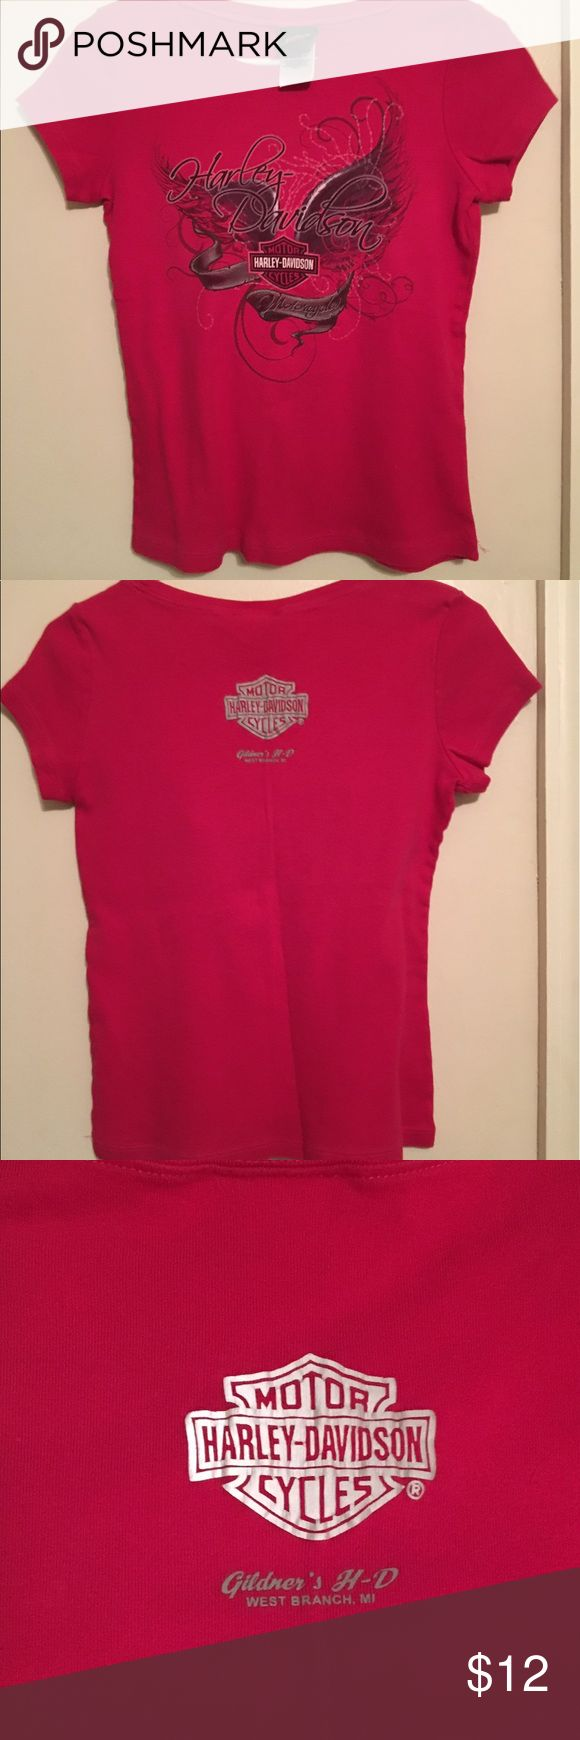 """HARLEY-DAVIDSON Motor Cycles T Shirt HARLEY-DAVIDSON Motor Cycles T Shirt. Red Med. In good Condition. It did shrink so it would go for Small. Measurements: Shoulder to shoulder 16"""" x 21"""" top to bottom..100% Cotton. Wash in cold water. Great condition. 💖Thank you for stopping by. Harley-Davidson Tops Tees - Short Sleeve"""